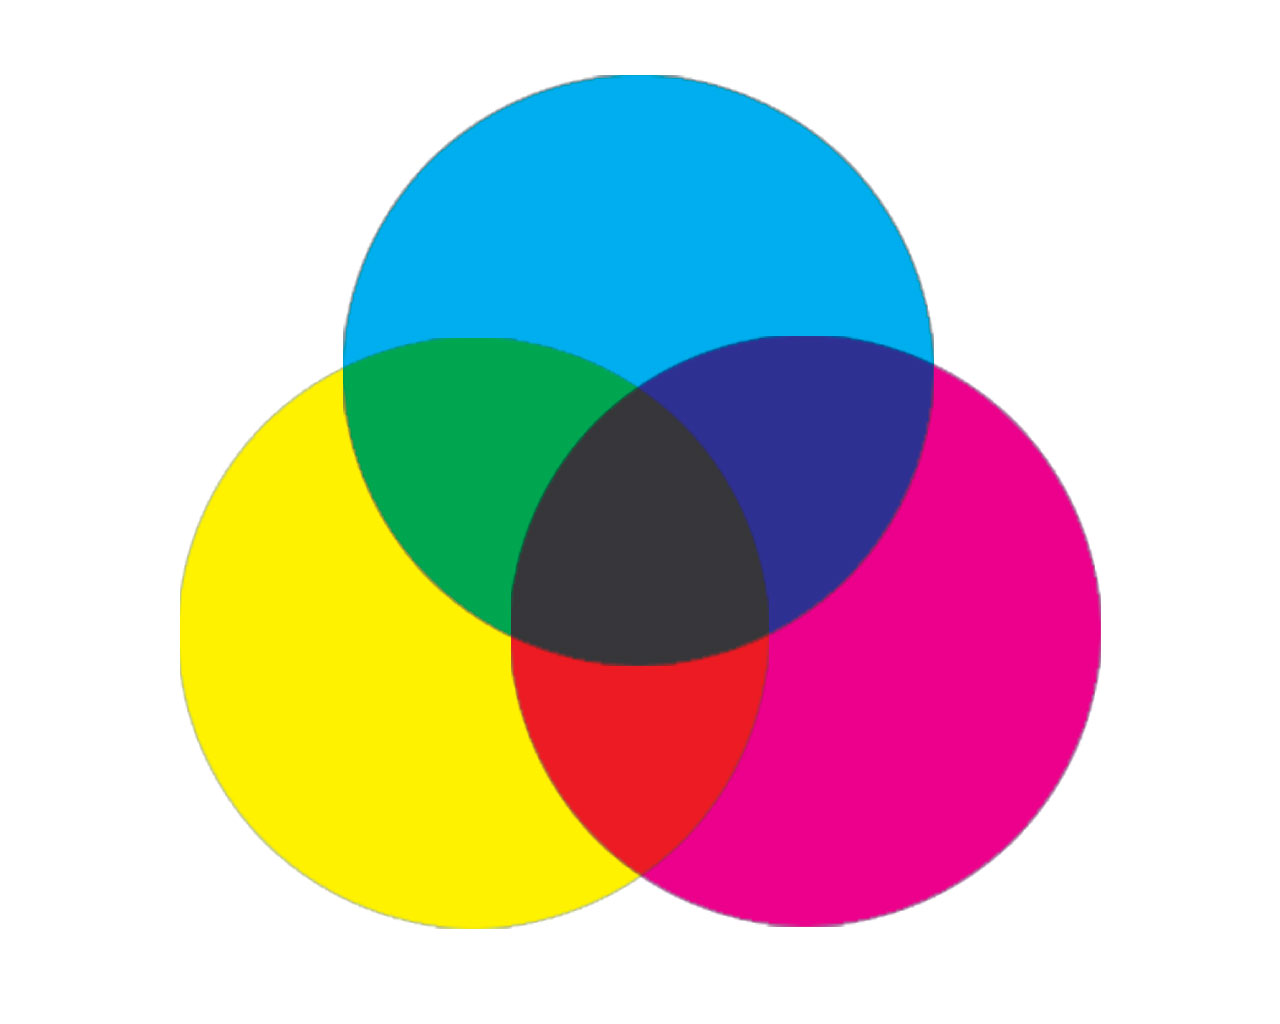 Three Venn Diagram: Subtractive color mixing.jpg - Wikimedia Commons,Chart